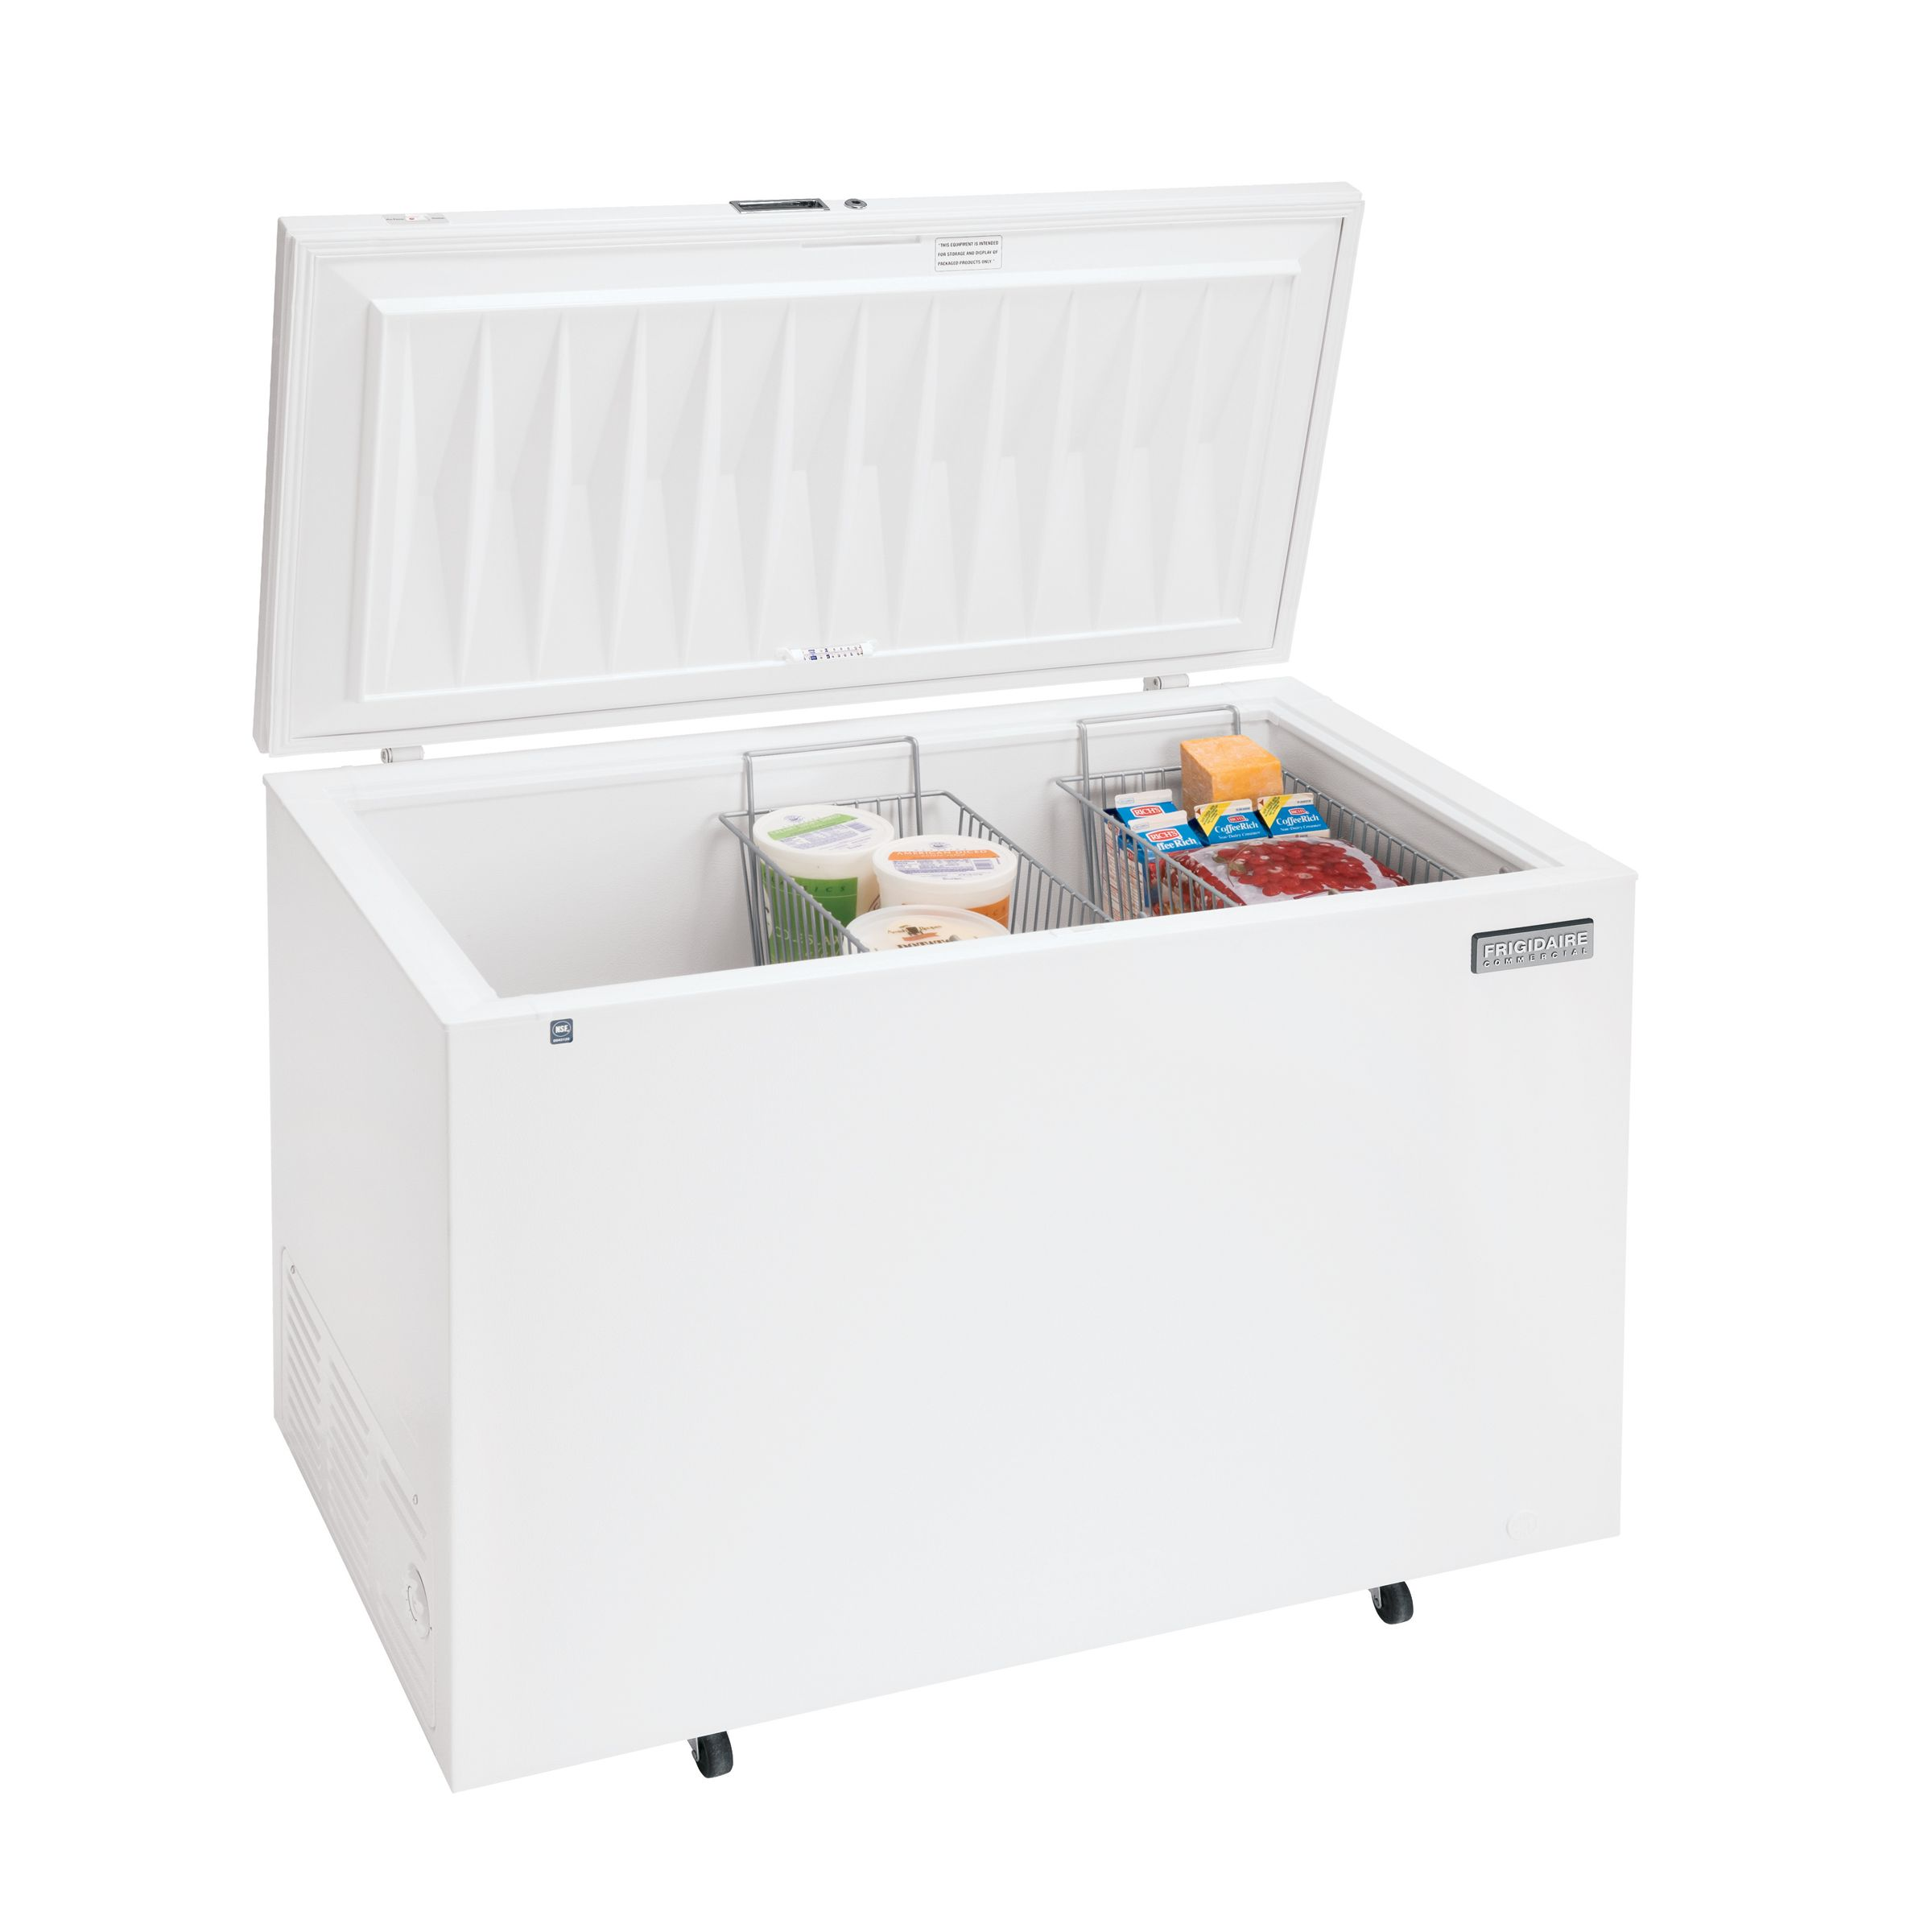 14.8 cu. ft. Chest Freezer (FCCS151)